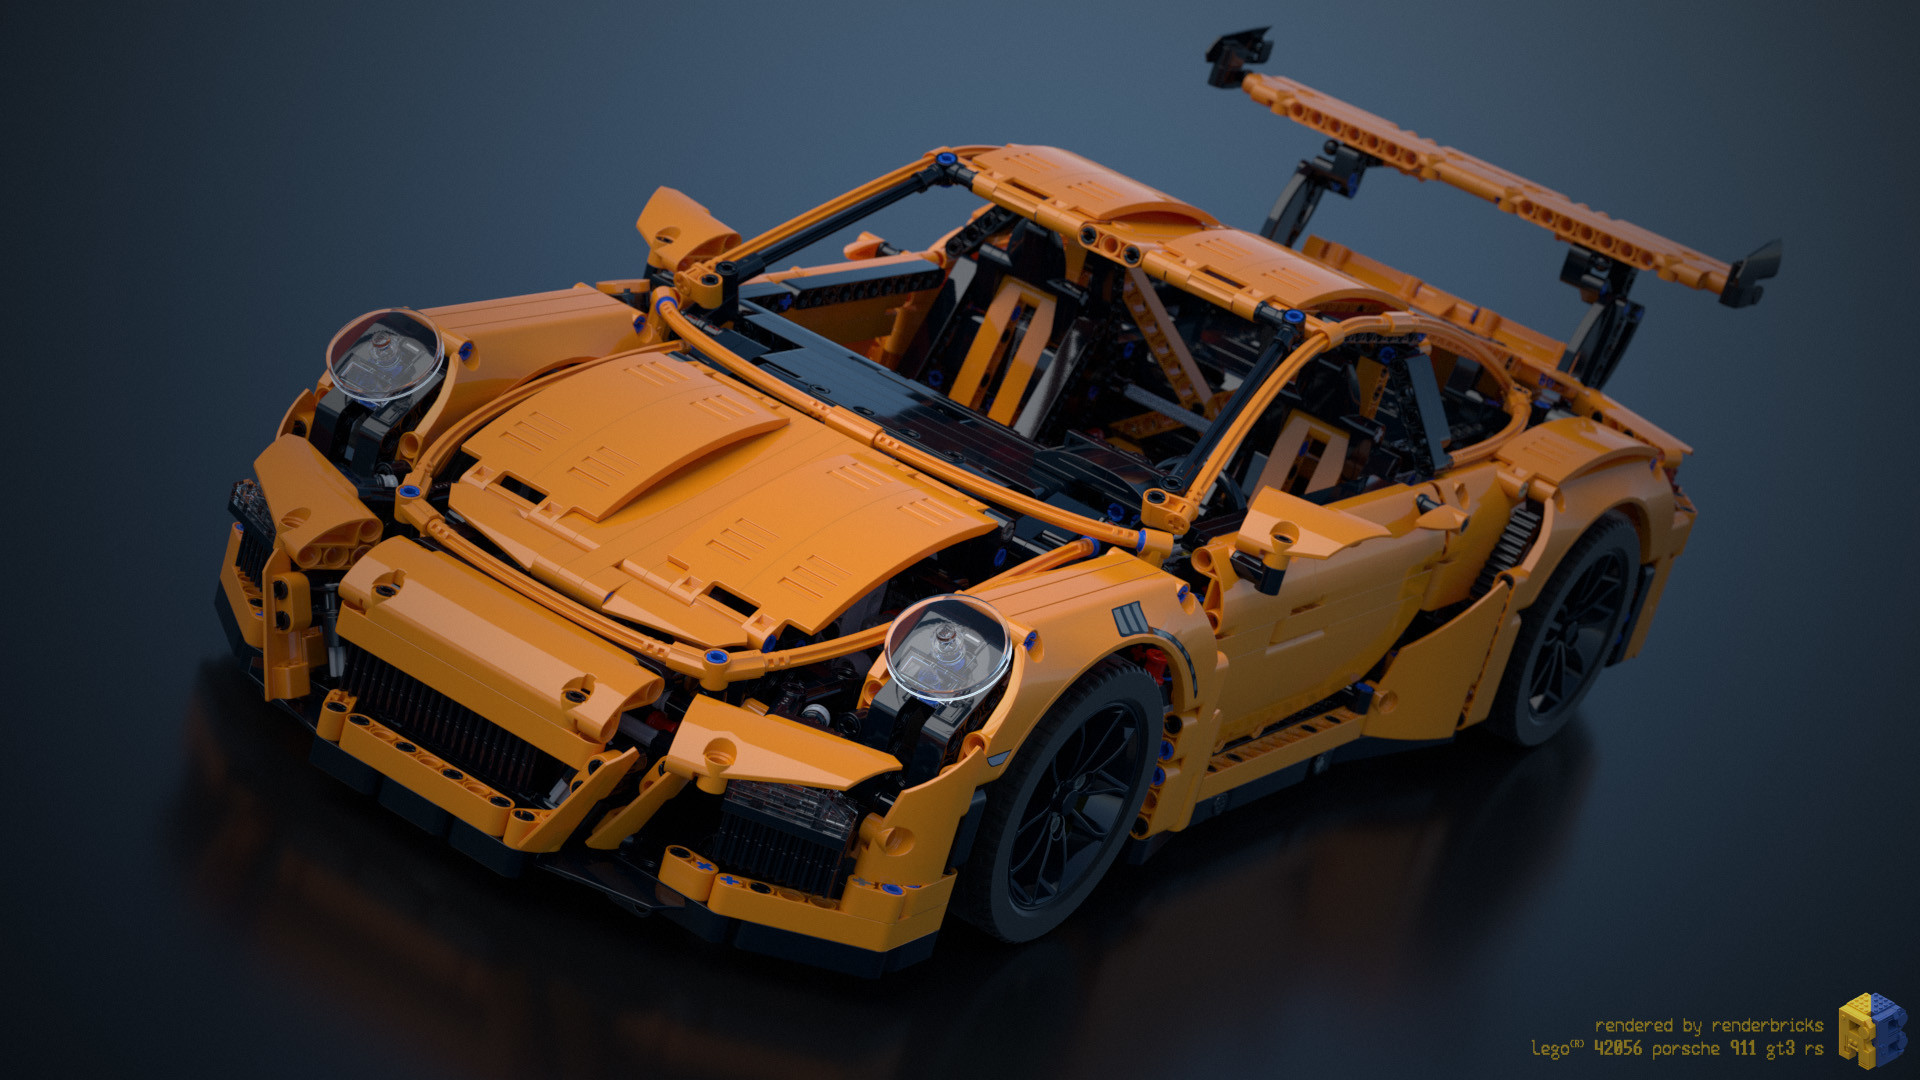 renderbricks lego technic 42056 porsche gt3 rs. Black Bedroom Furniture Sets. Home Design Ideas